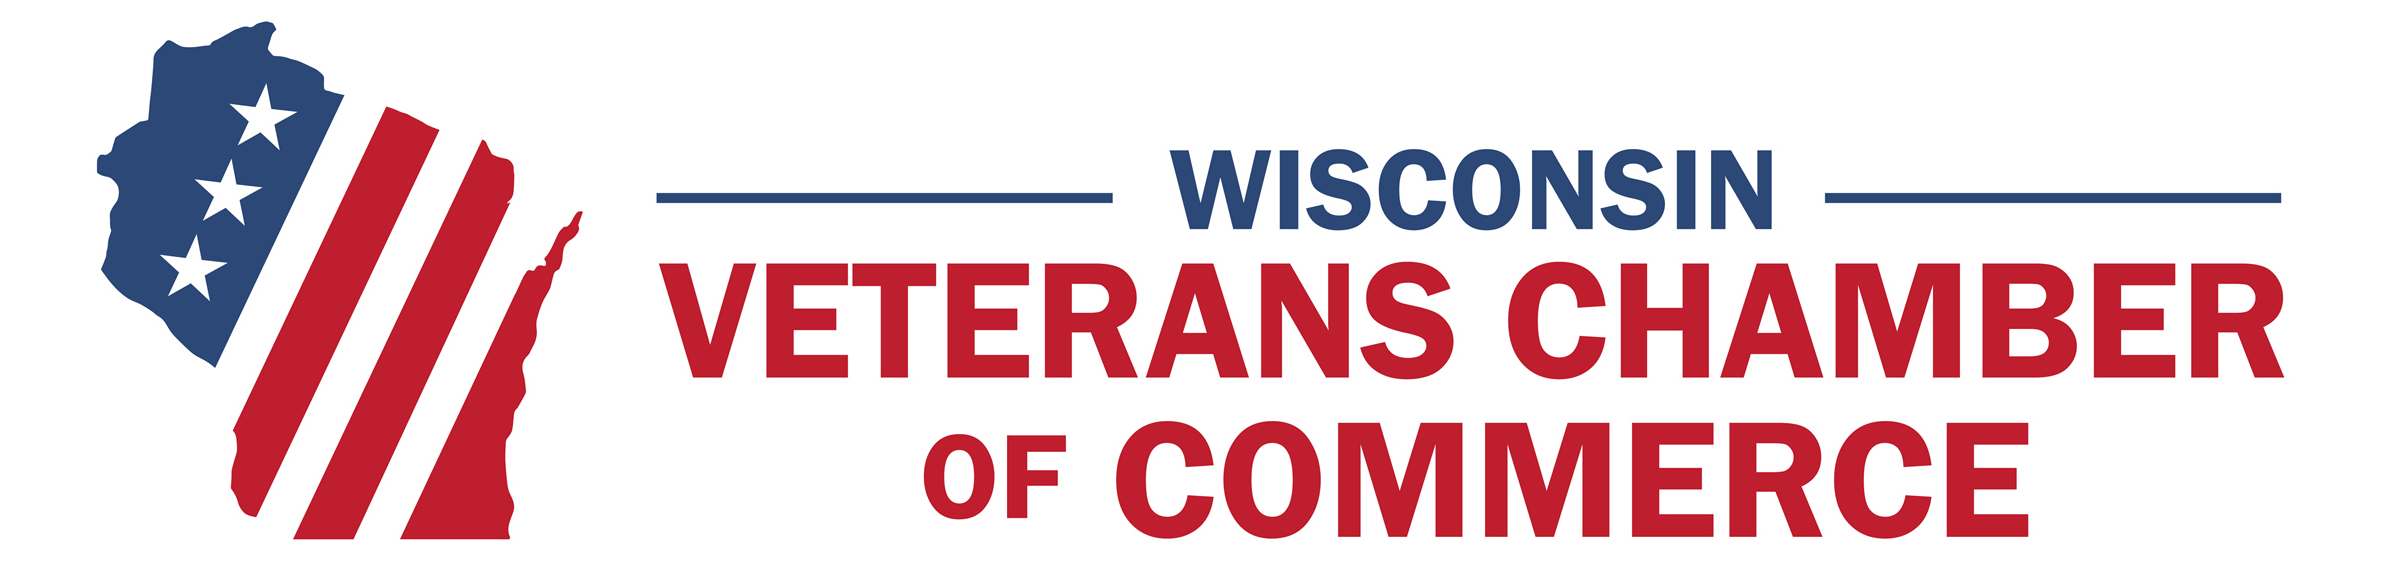 Wisconsin Veterans Chamber of Commerce Will Move Programming Online